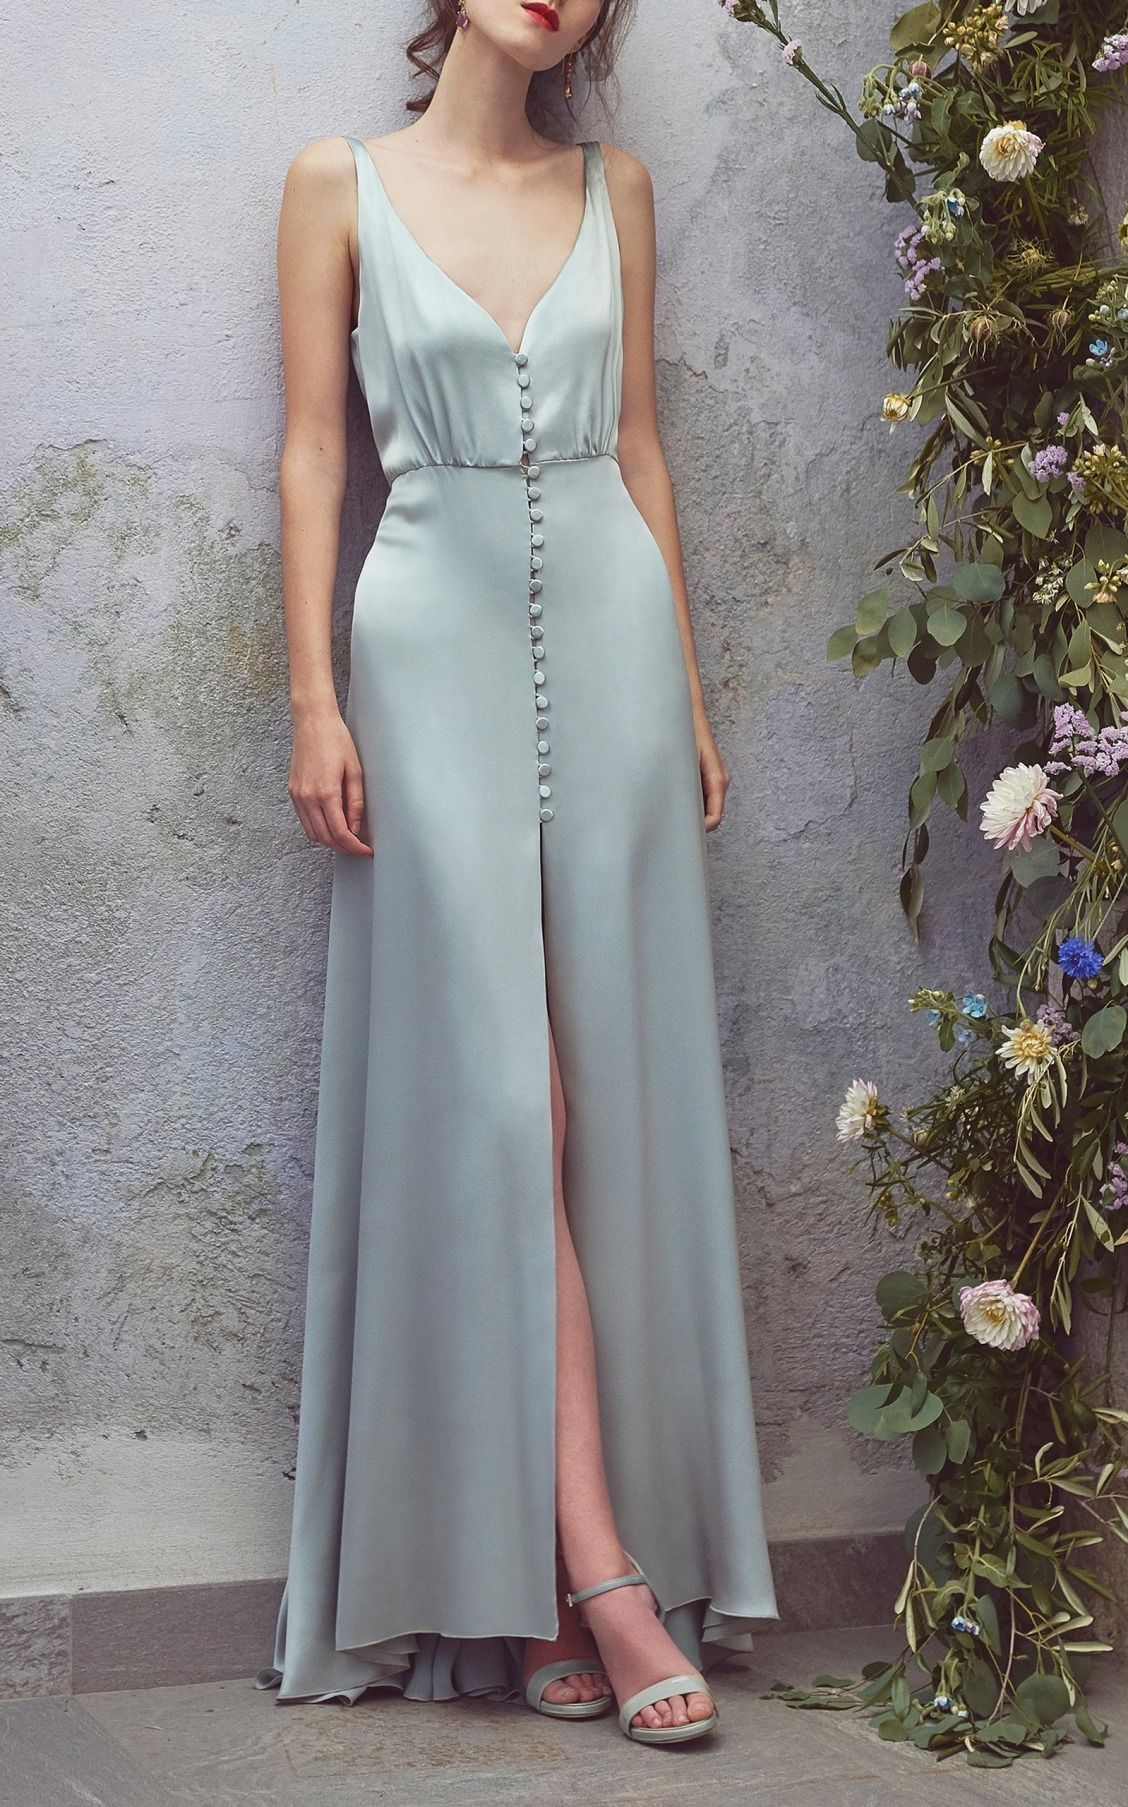 Stylegene vintage style pinterest vintage gowns and clothes